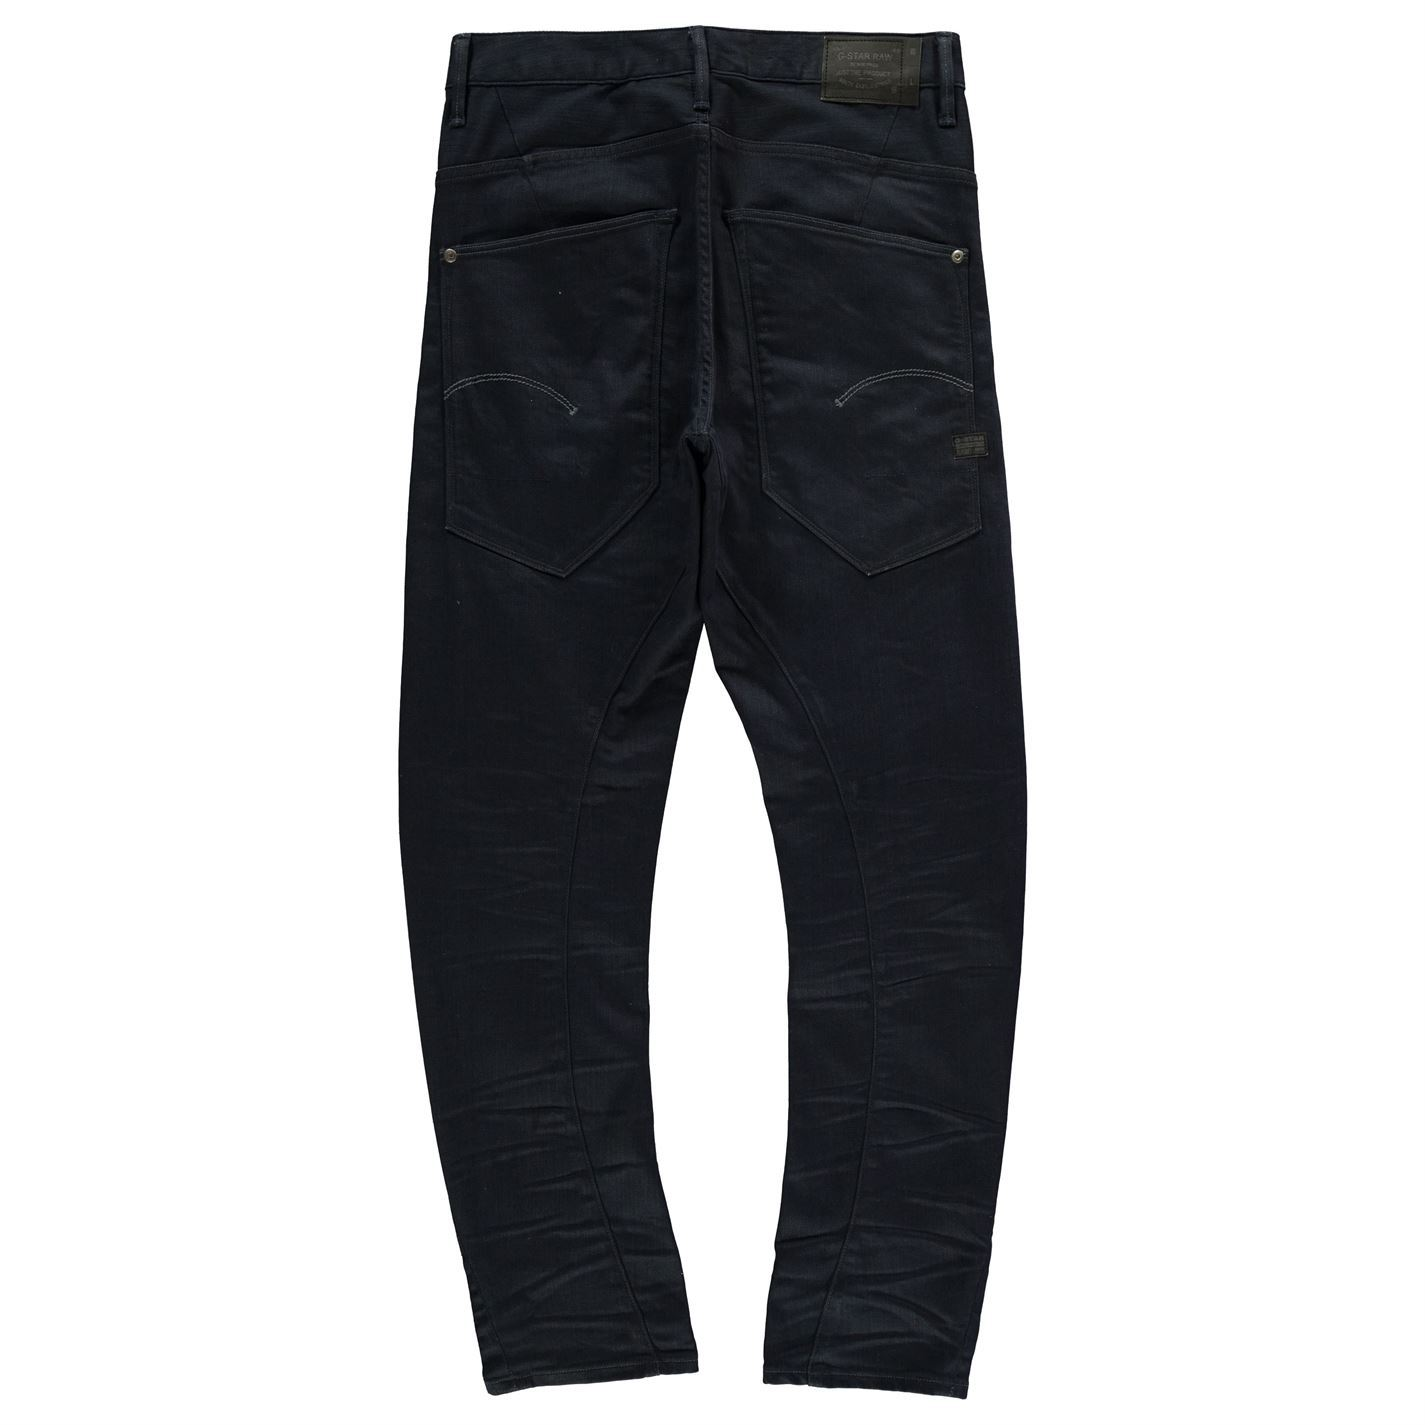 Men's Clothing Confident Jeans Denim G Star Raw Type C 3d Loose Tapered Coloured Mens Trouser Pants Blue